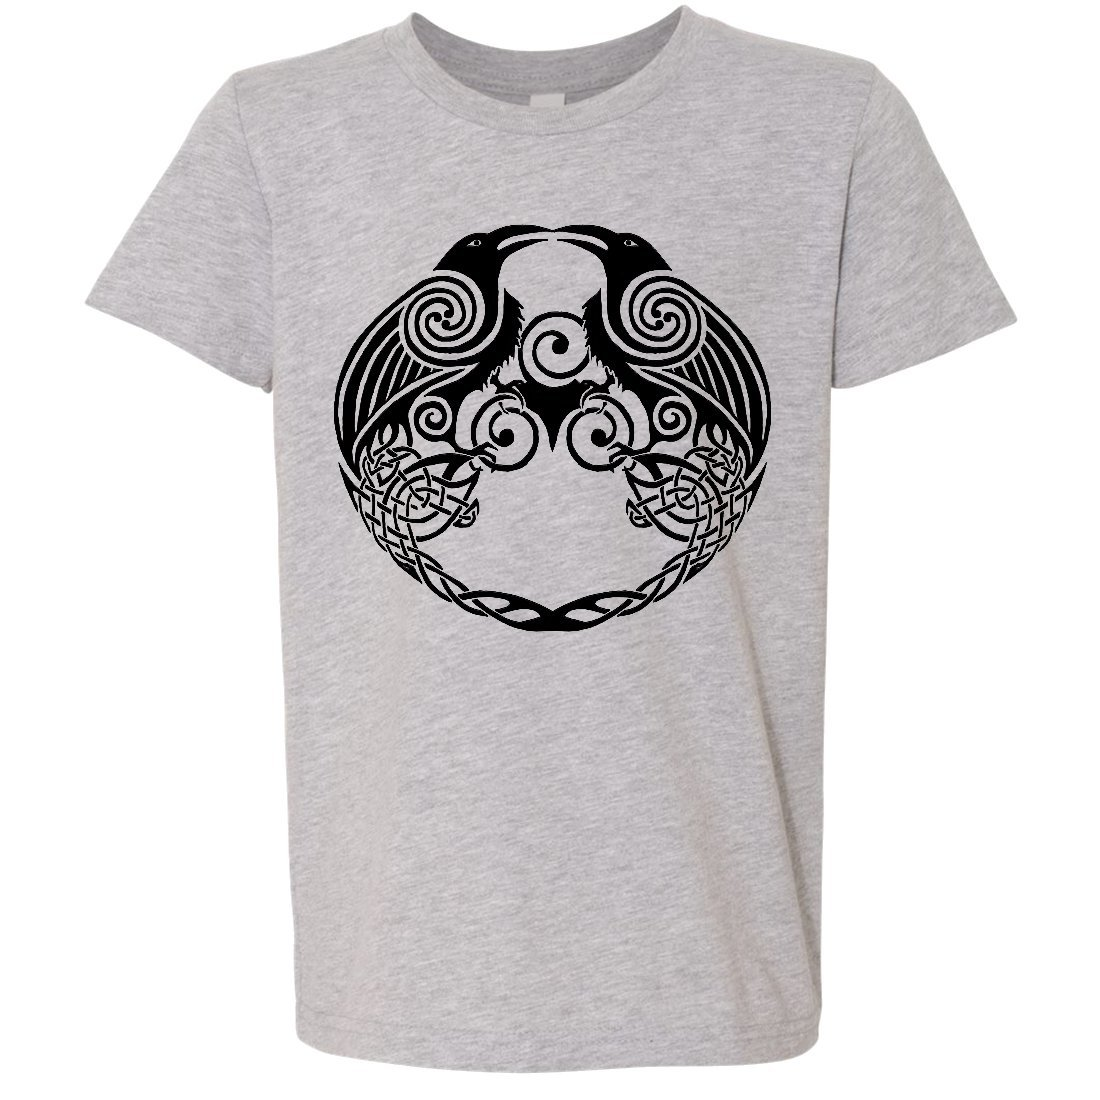 Dual Raven Asst Colors Youth T-Shirt//tee